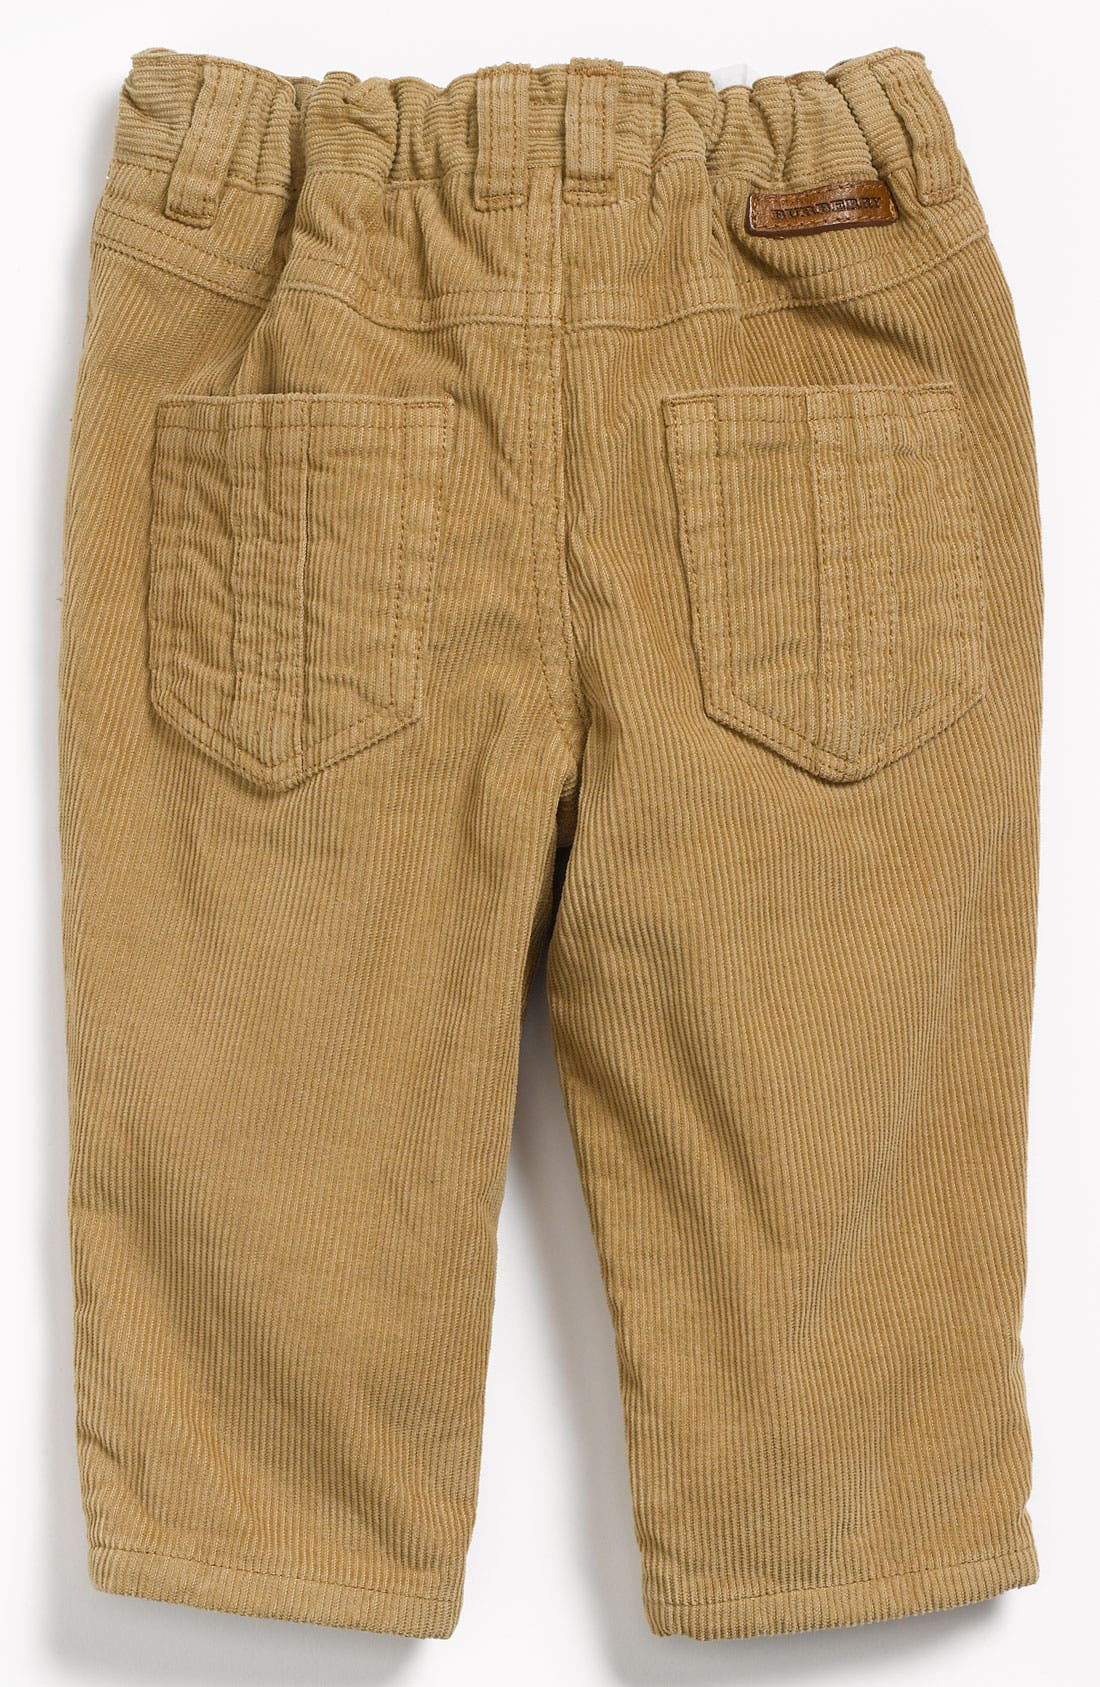 Main Image - Burberry Corduroy Trousers (Toddler)